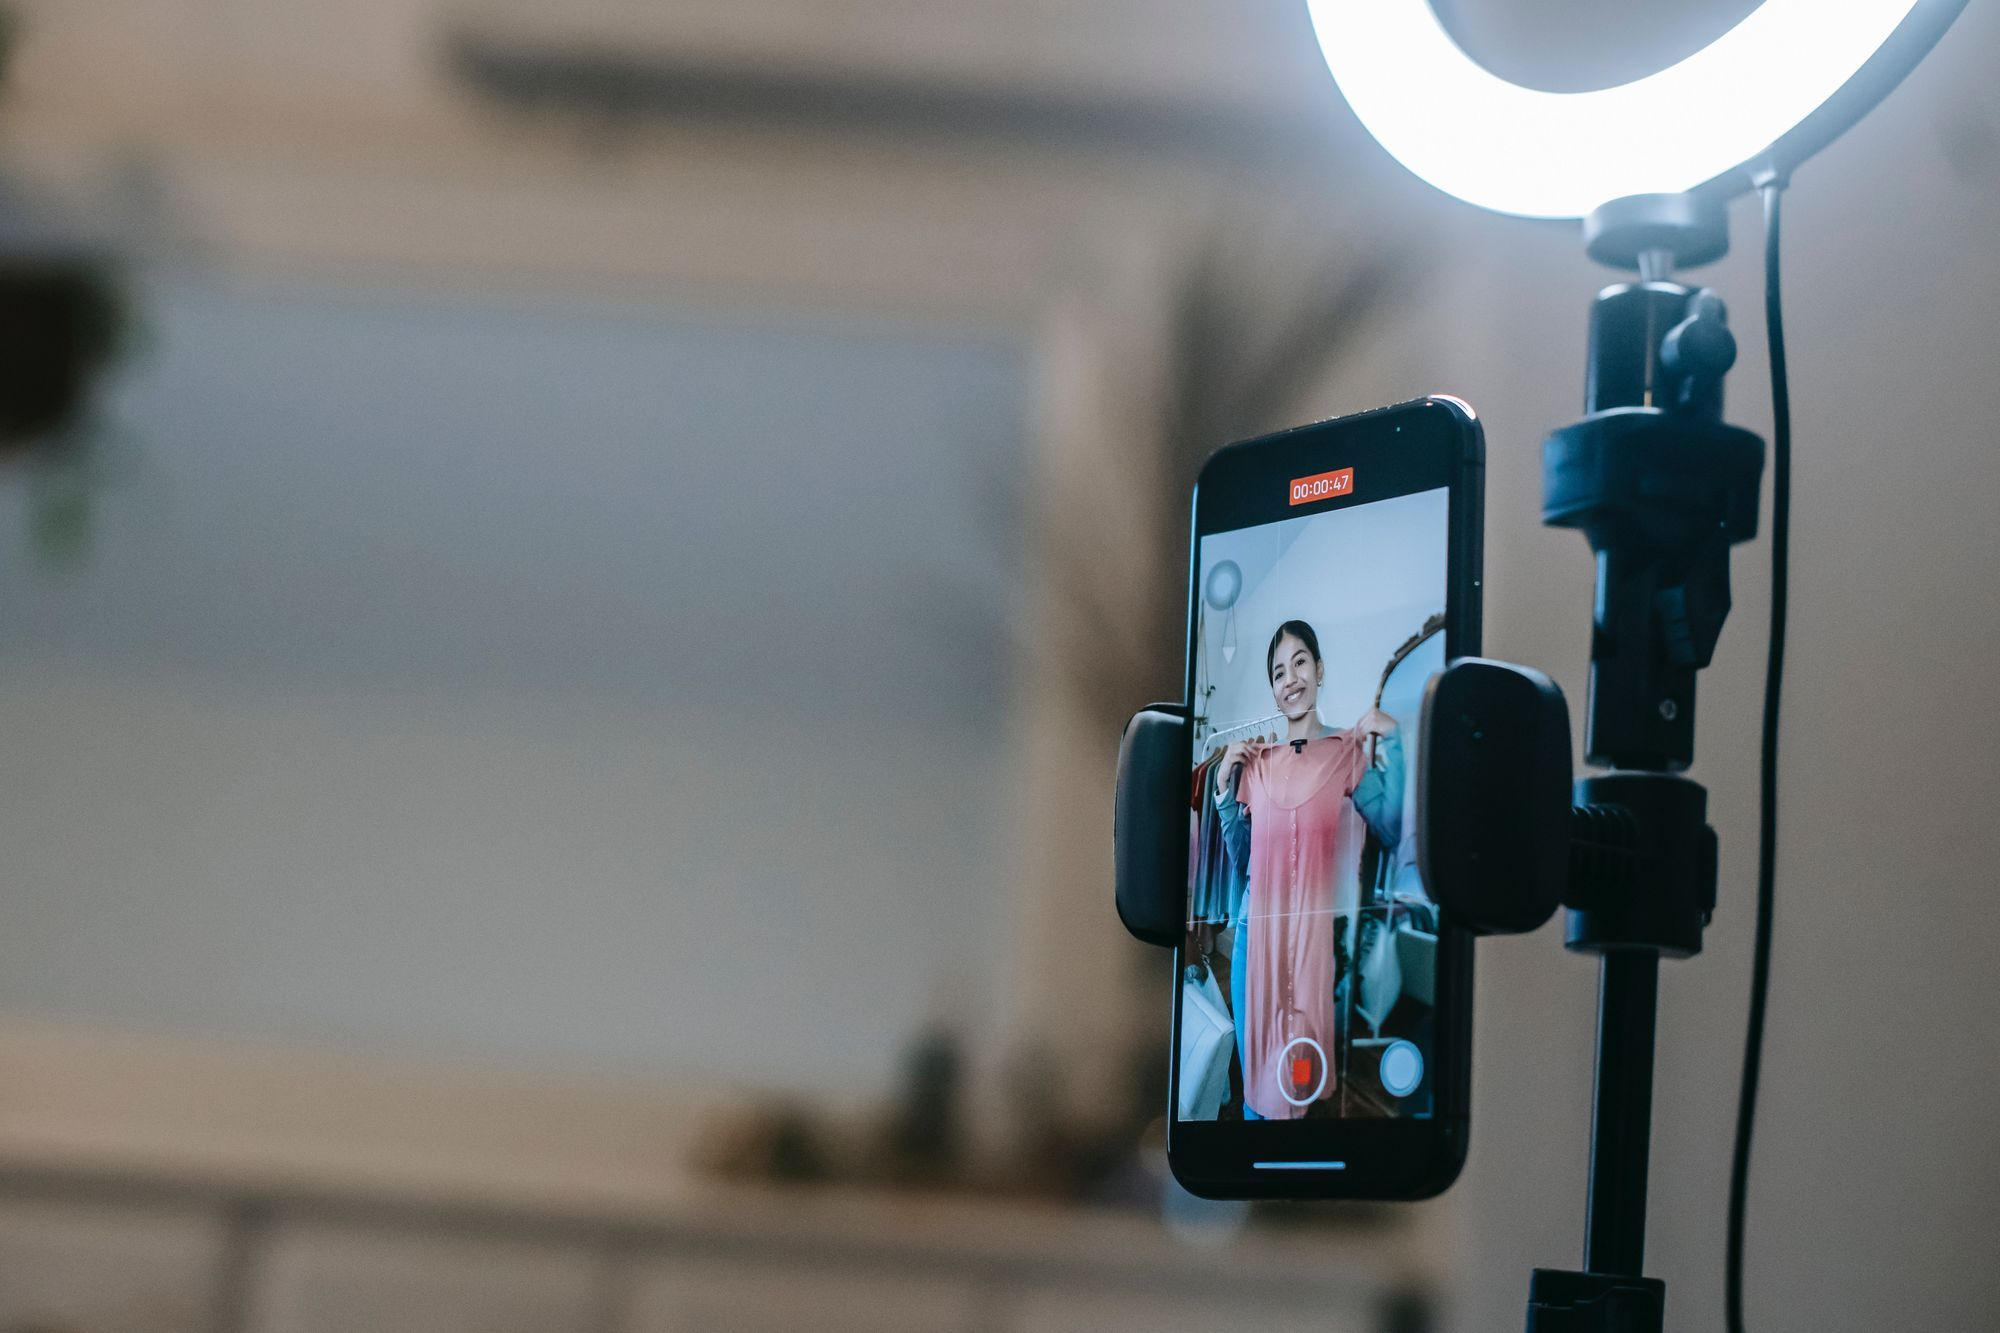 Best ring light for iPhone